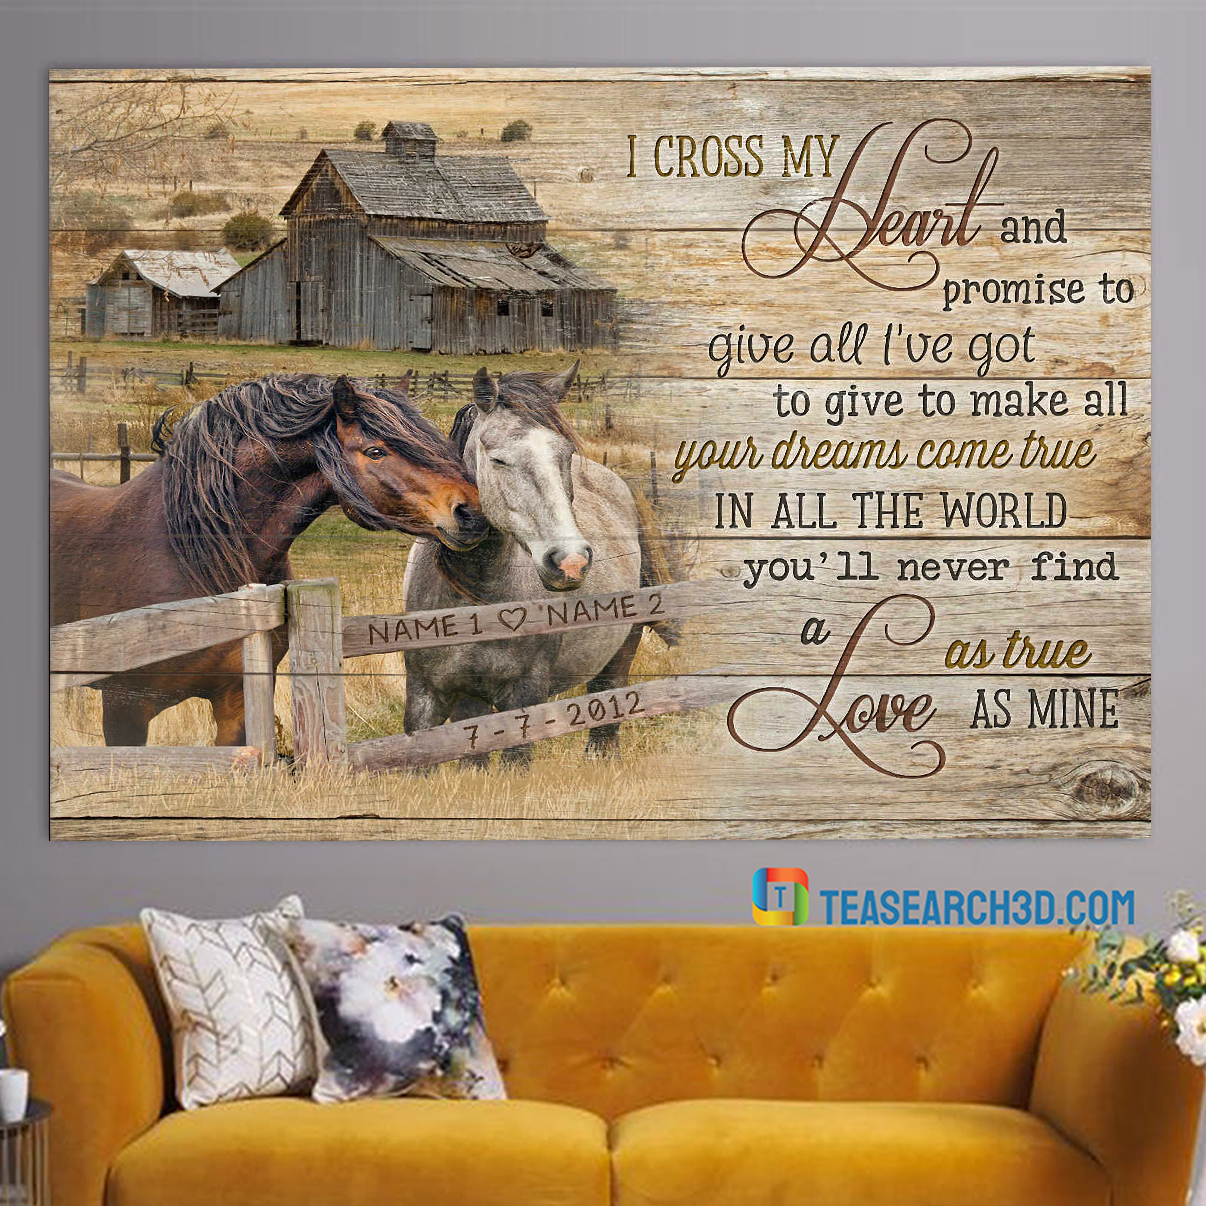 Personalized custom name horses couple and country barn I cross my hear canvas